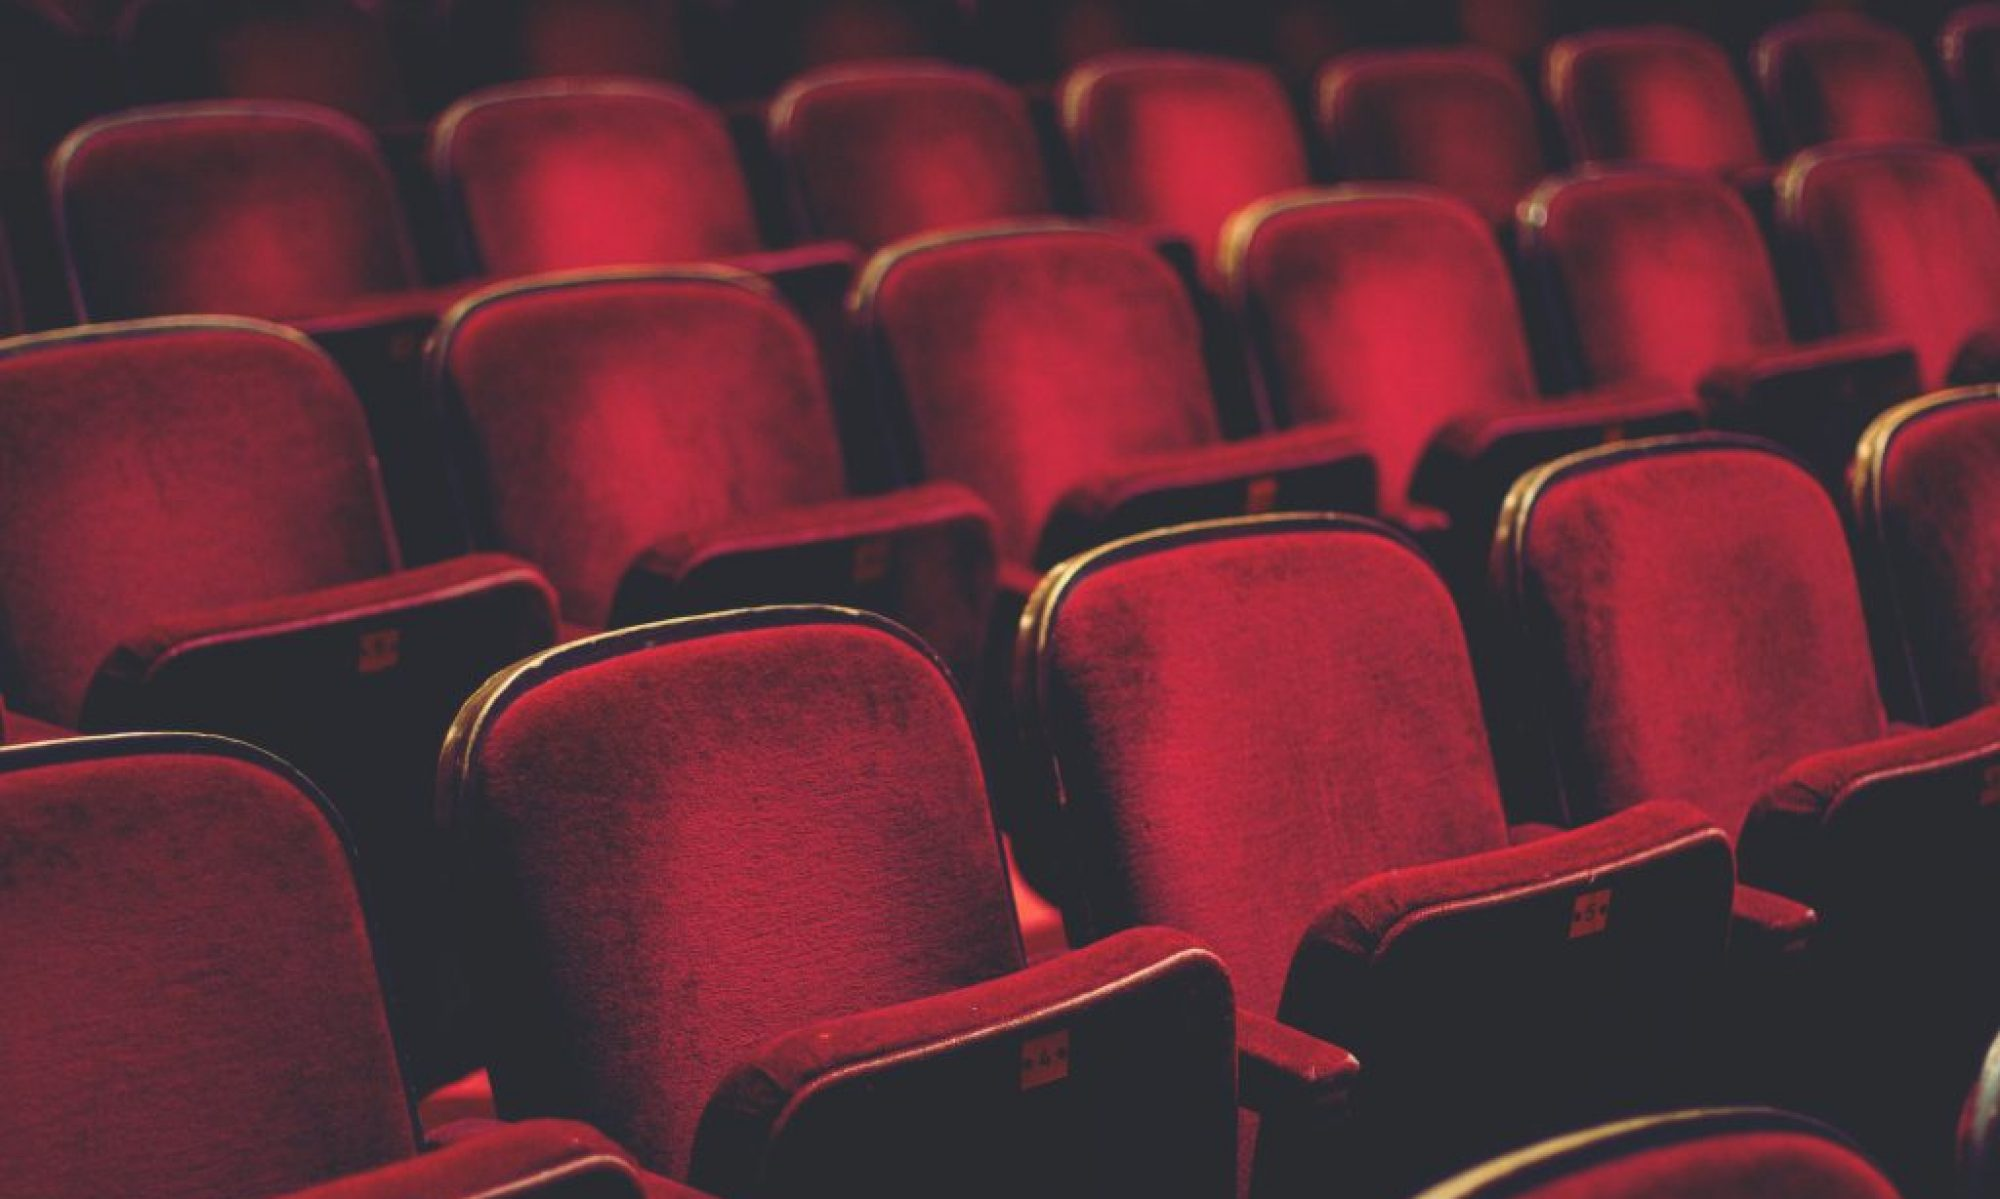 theaterreviewsfrommyseat com - Theater reviews and more